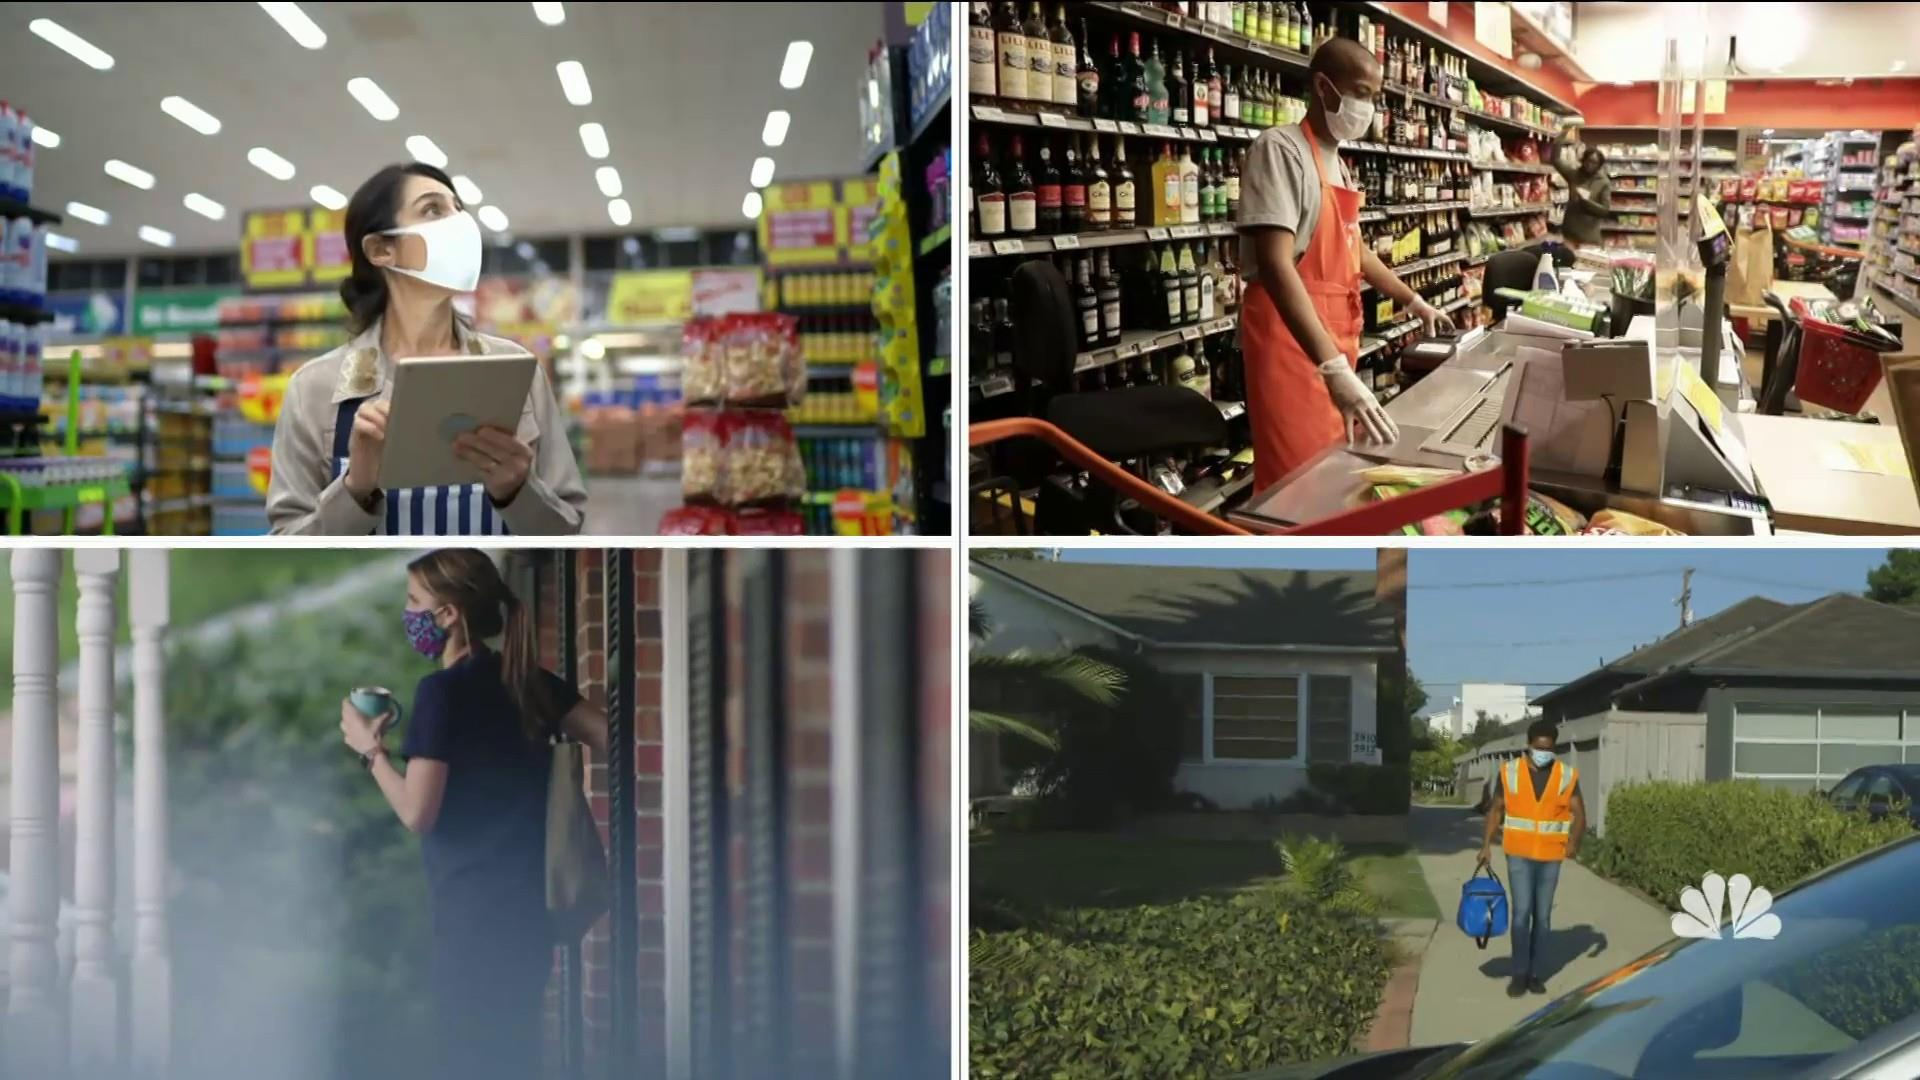 news.yahoo.com: With job listings up, small business owners still look to fill positions